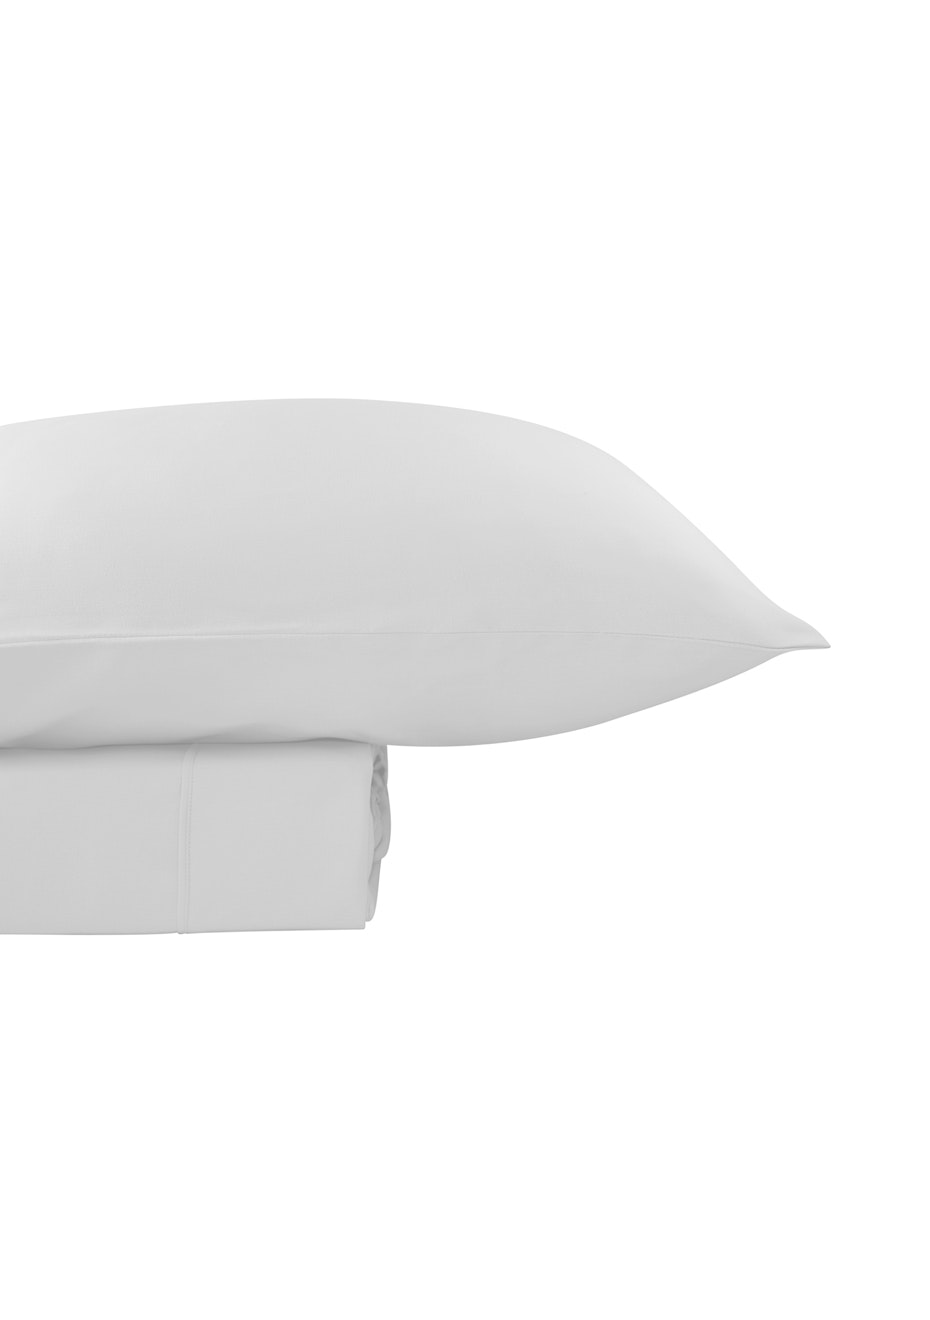 Thermal Flannel Sheet Sets - White - Queen Bed